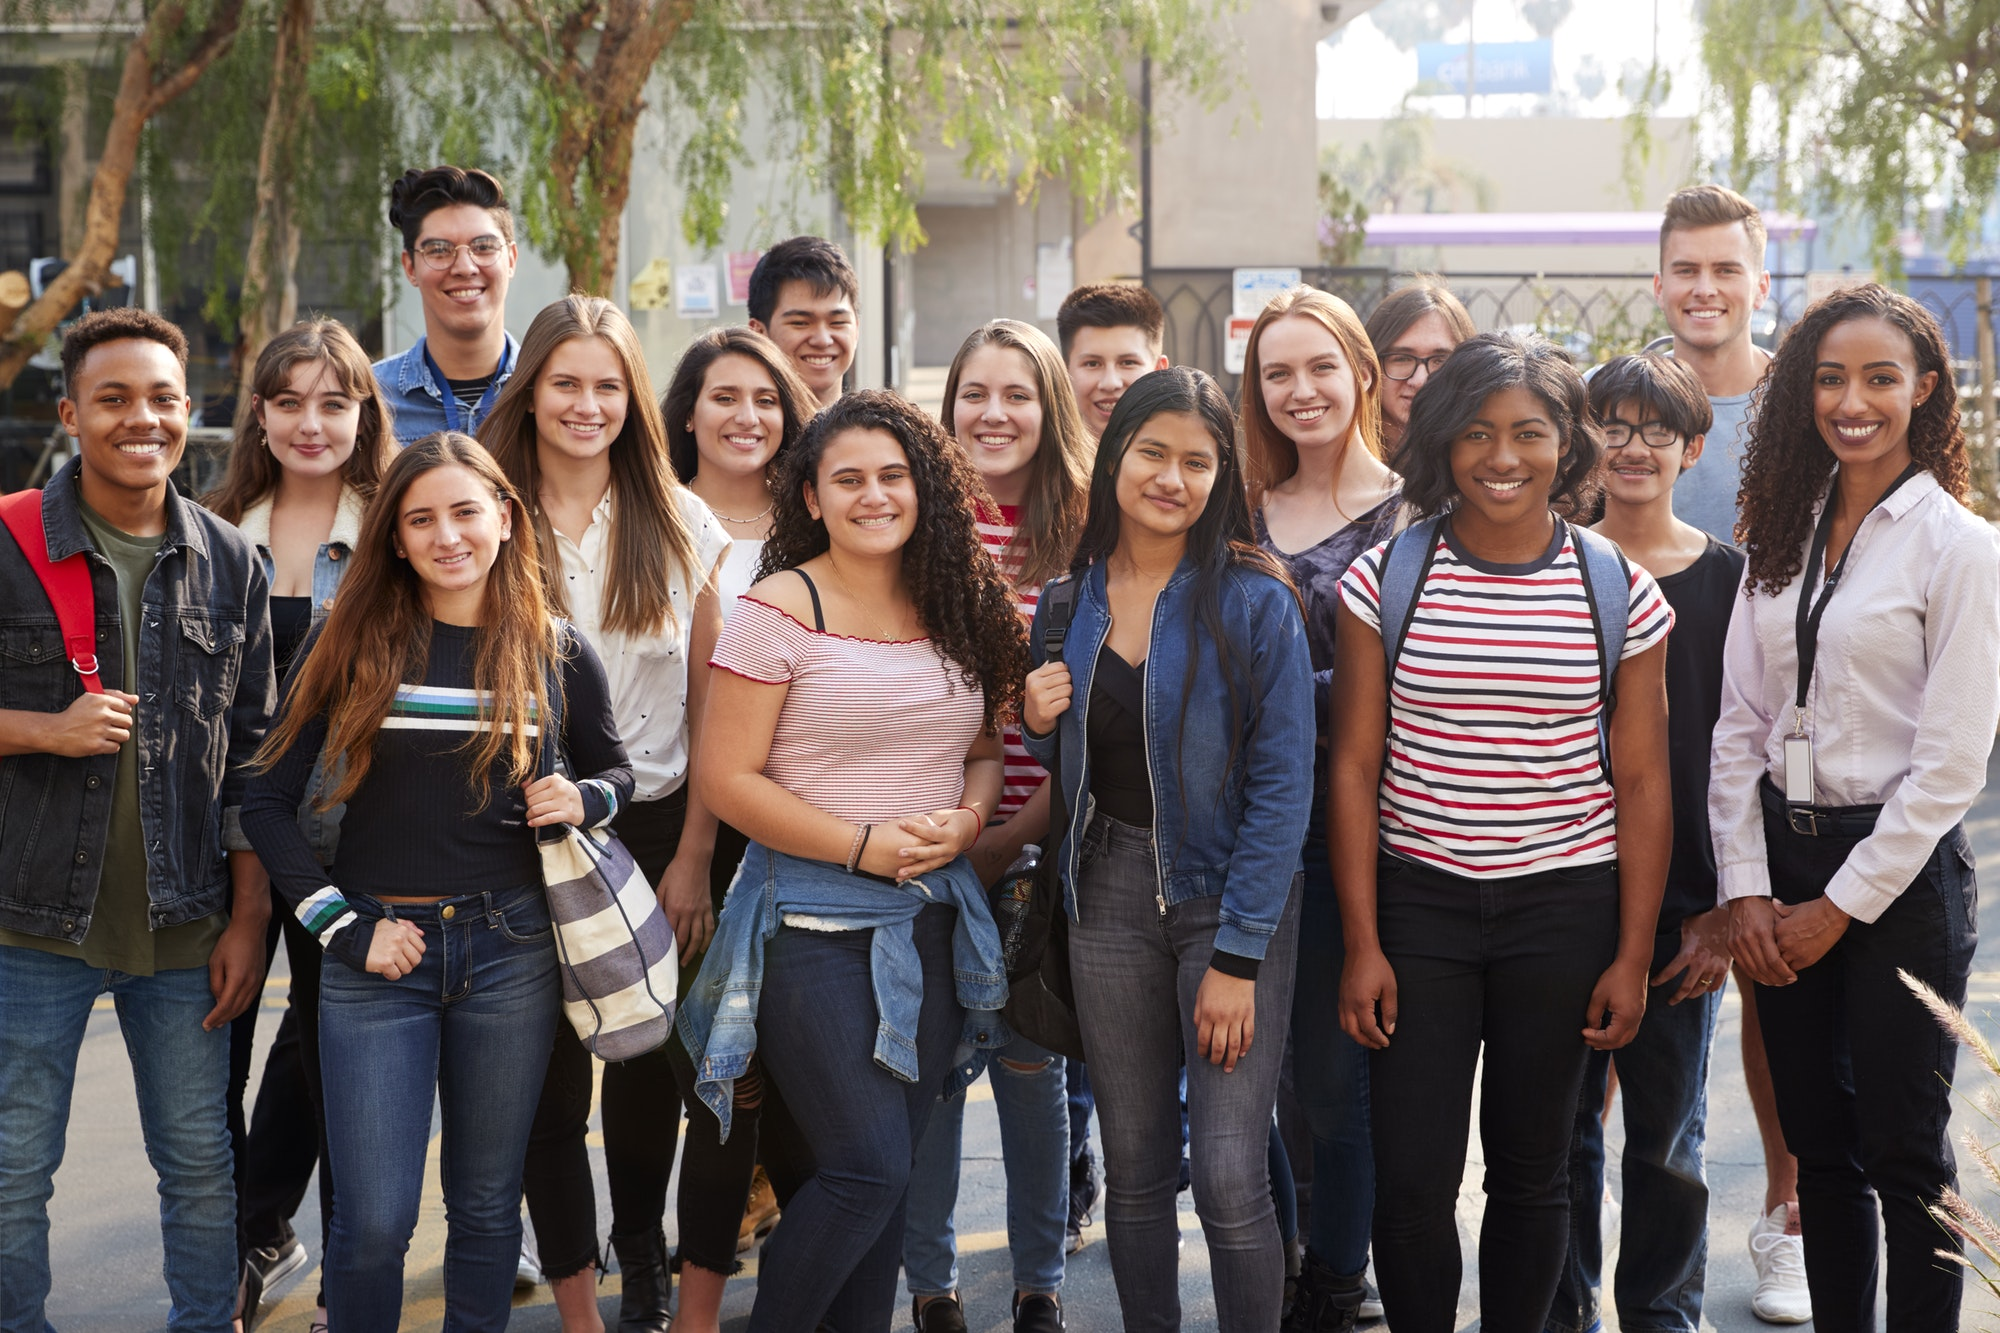 Portrait Of Smiling Male And Female College Students With Teachers Outside School Building